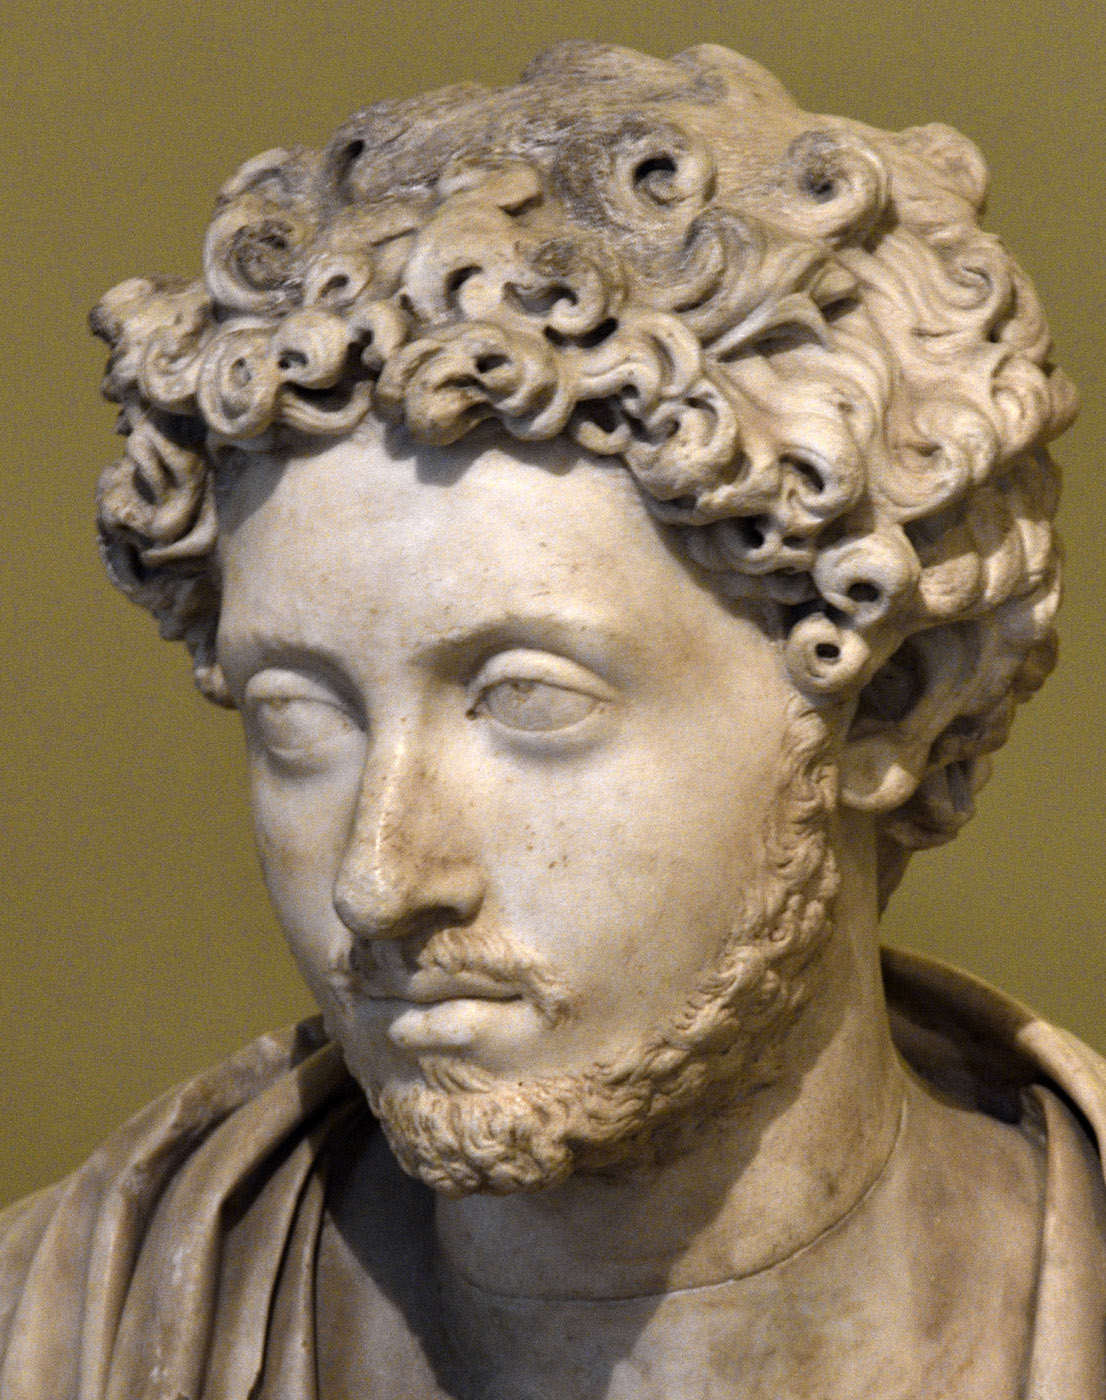 Portrait of young Marcus Aurelius. Marble. Mid-2nd cent. CE. Bust made in the Renaissance. Inv. No. 115. Venice, National Archaeological Museum